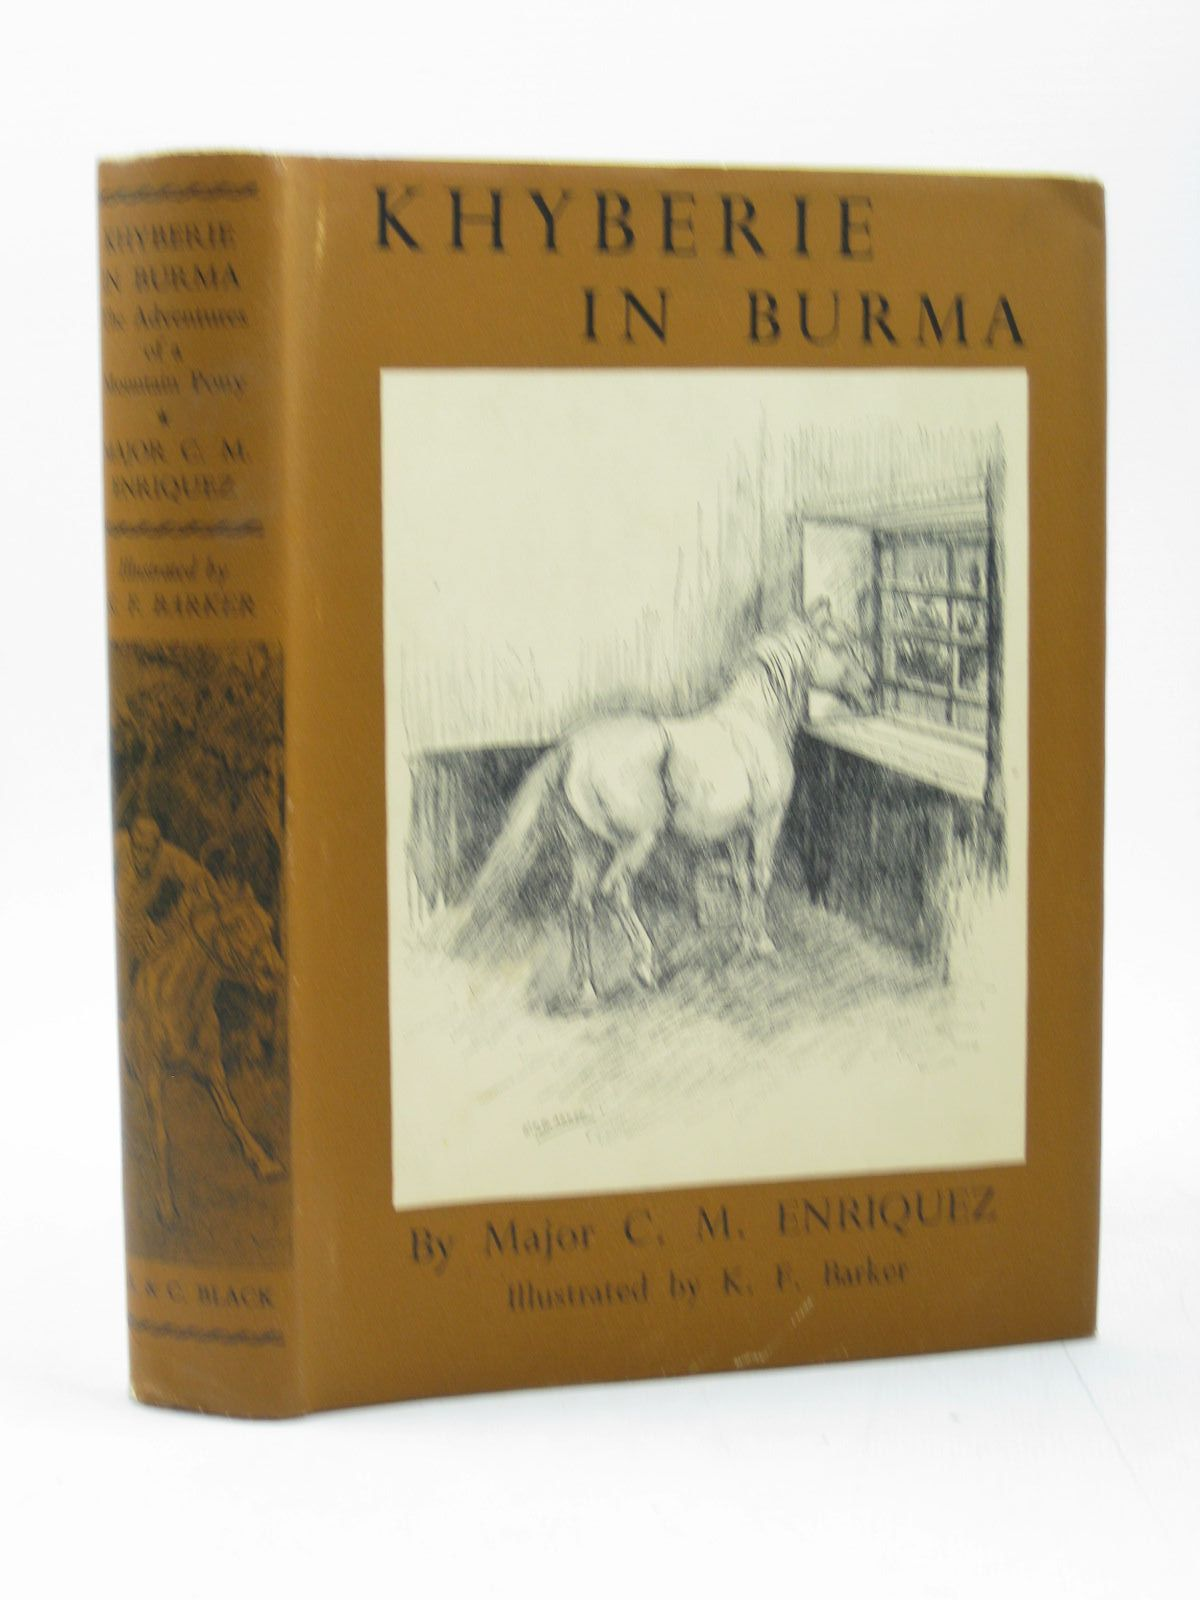 Photo of KHYBERIE IN BURMA written by Enriquez, C.M. illustrated by Barker, K.F. published by A. & C. Black Ltd. (STOCK CODE: 1313080)  for sale by Stella & Rose's Books